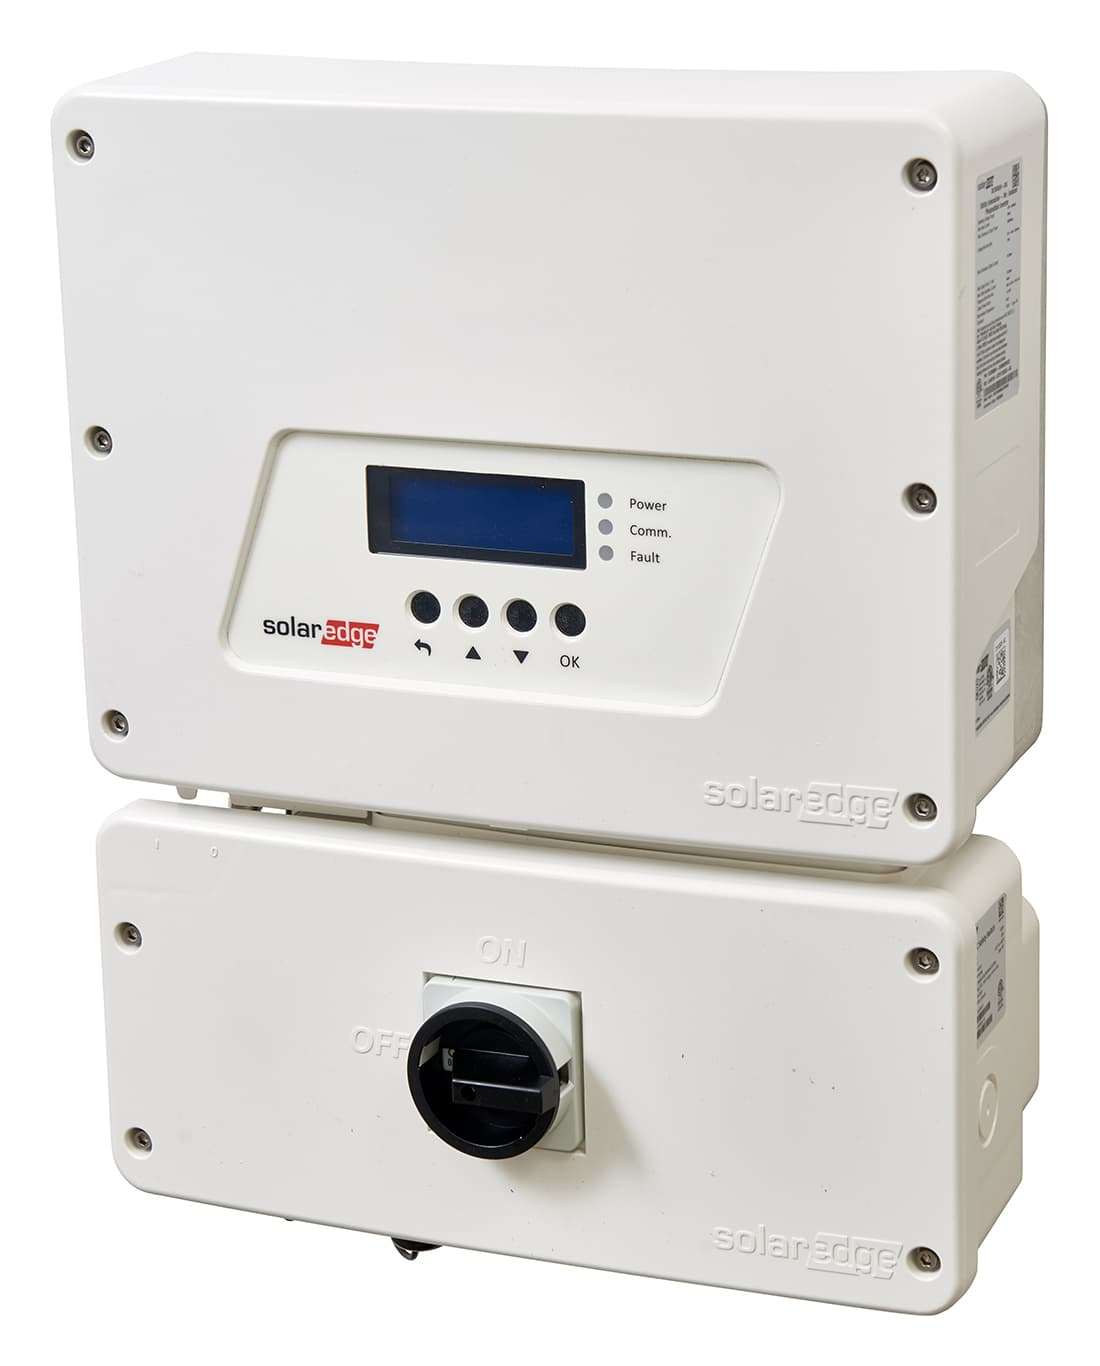 Solaredge Claims Cec Efficiency Record With Hd Wave